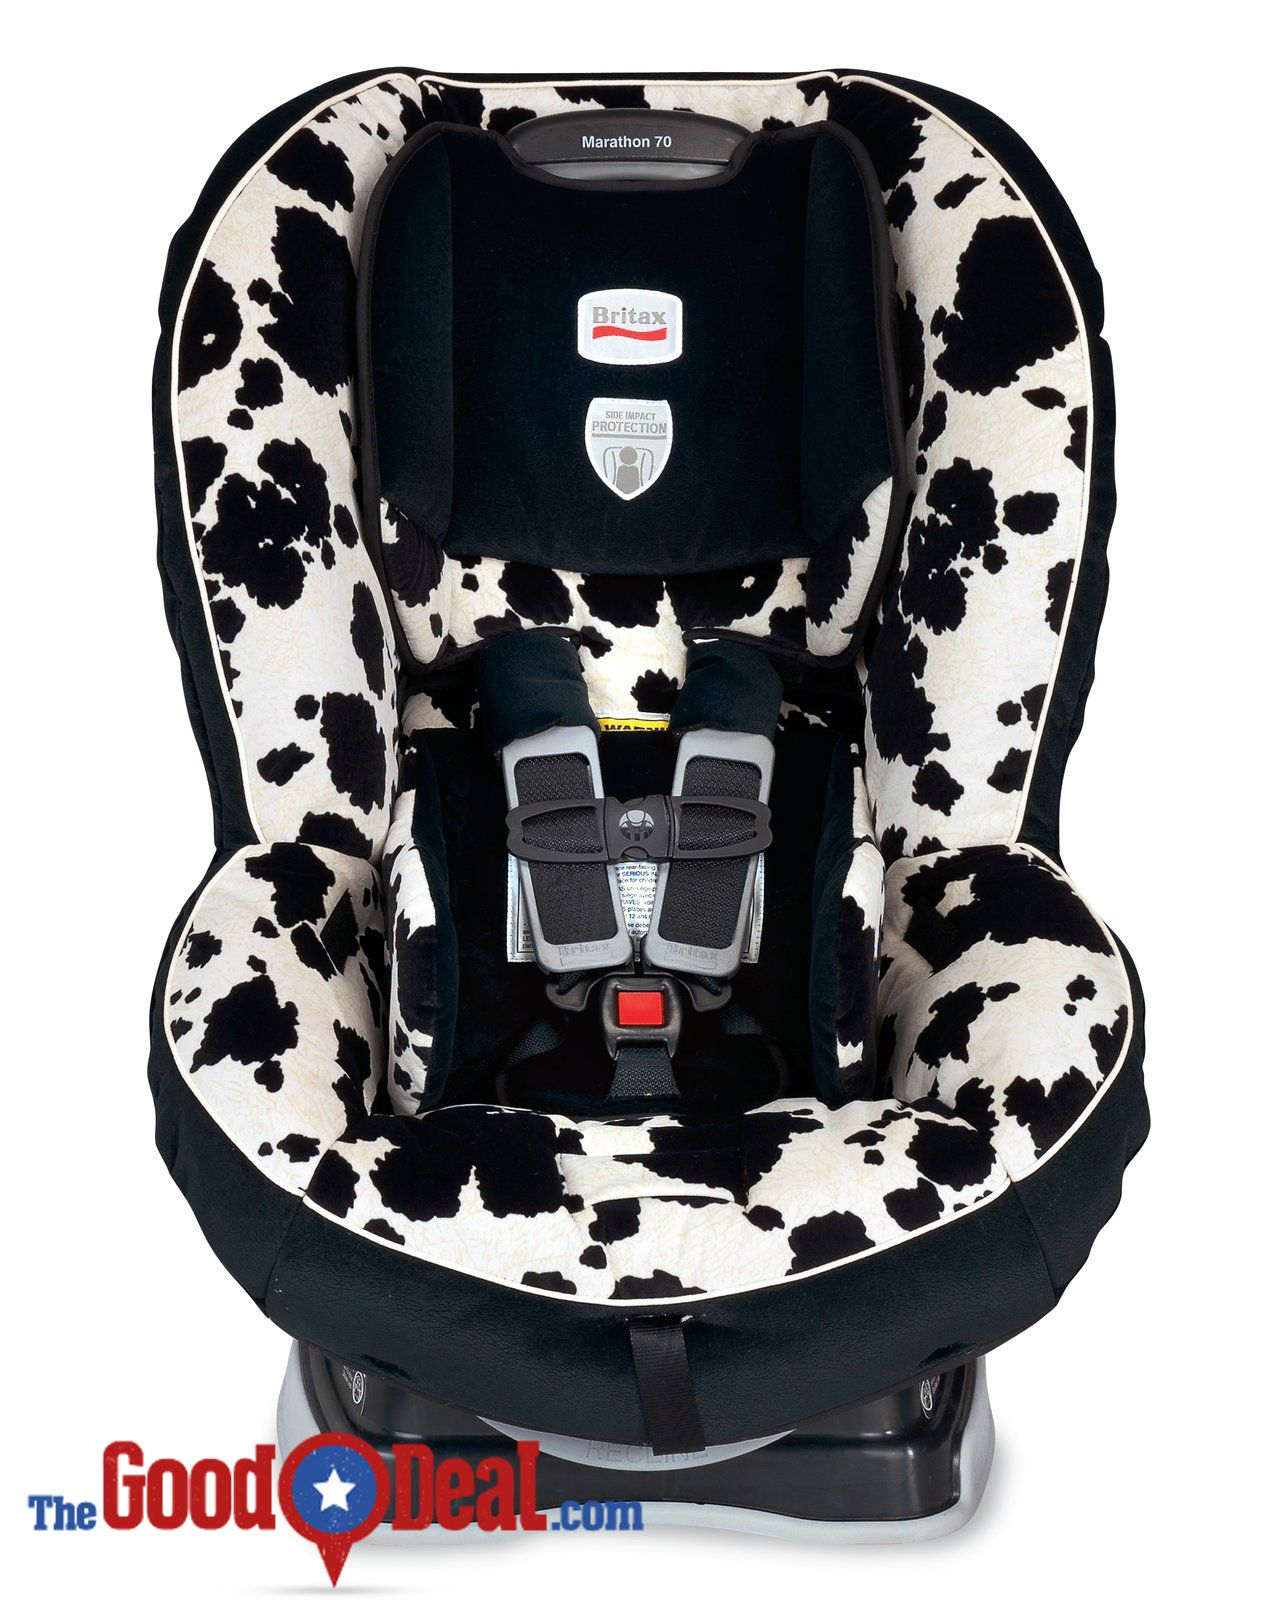 This Britax Marathon Cowmooflage Car Seat Would Certainly Make A Statement On The Roads Available For Only 80 O Car Seats Baby Car Seats Convertible Car Seat